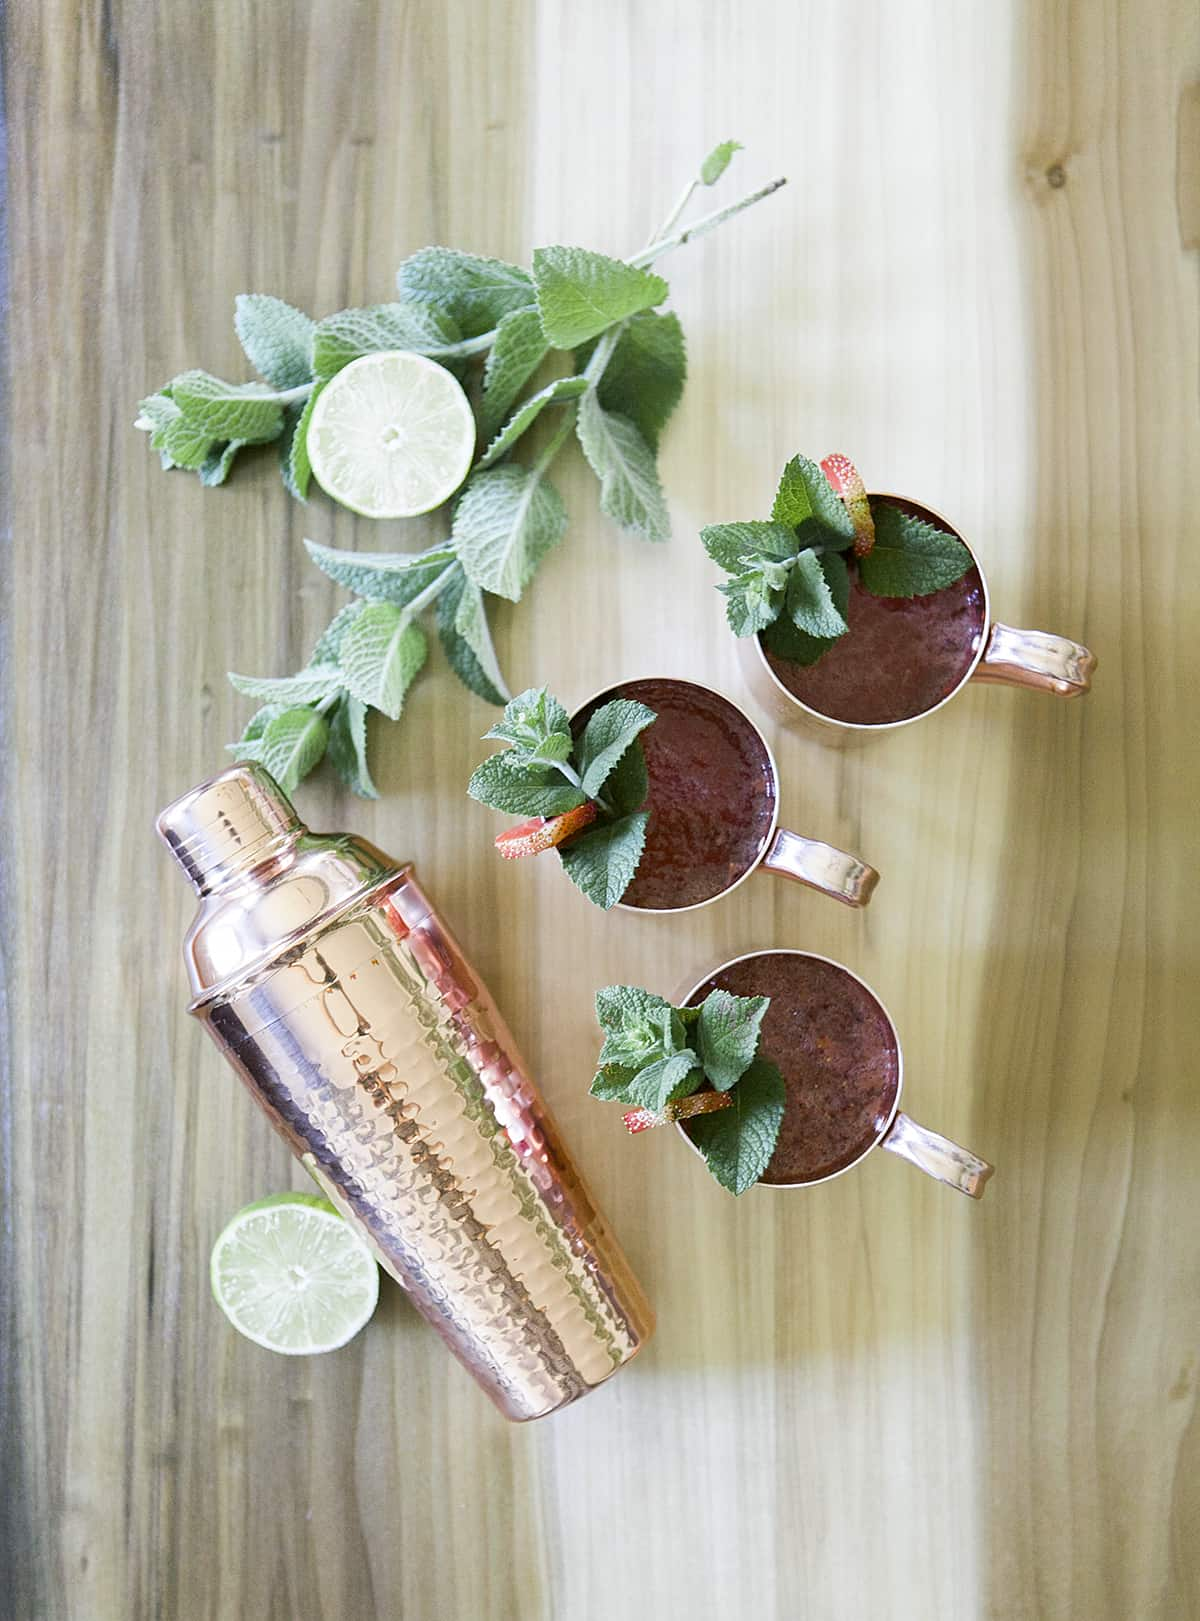 Moscow Mule | Classic Cocktails | Drink Your Garden | Jessica Brigham Blog | Magazine Ready for Life